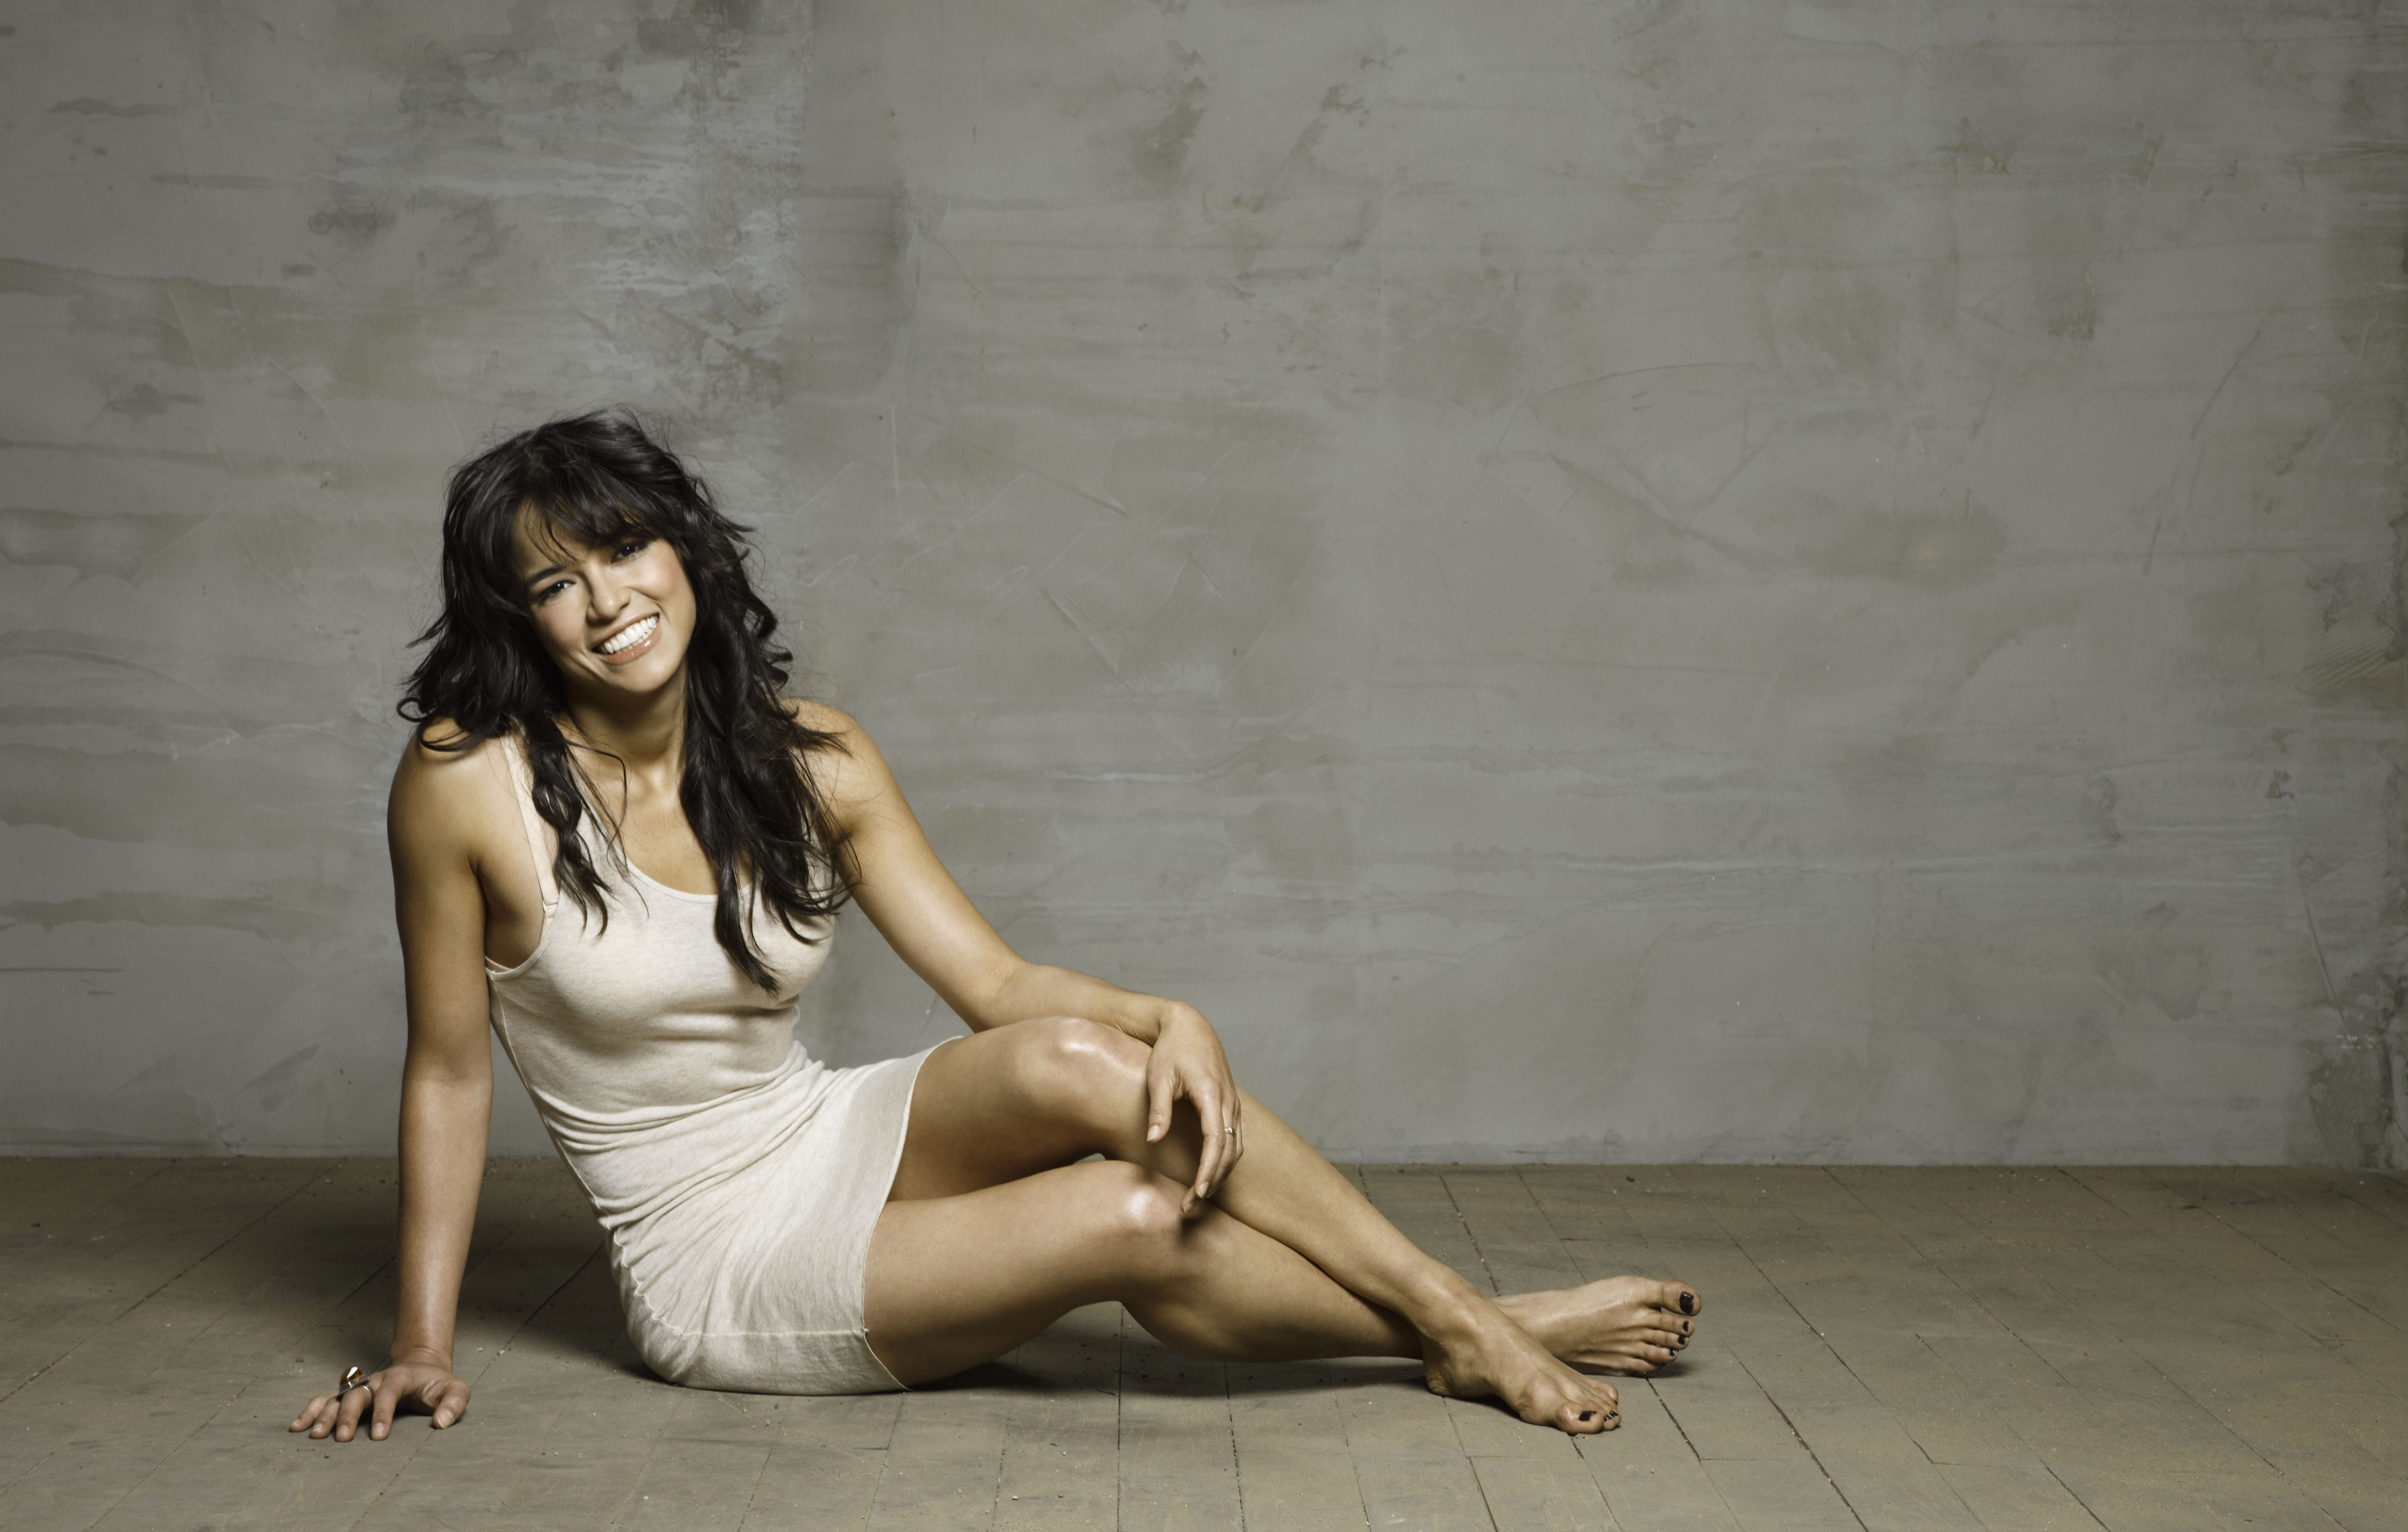 6600x4200 - Michelle Rodriguez Wallpapers 29